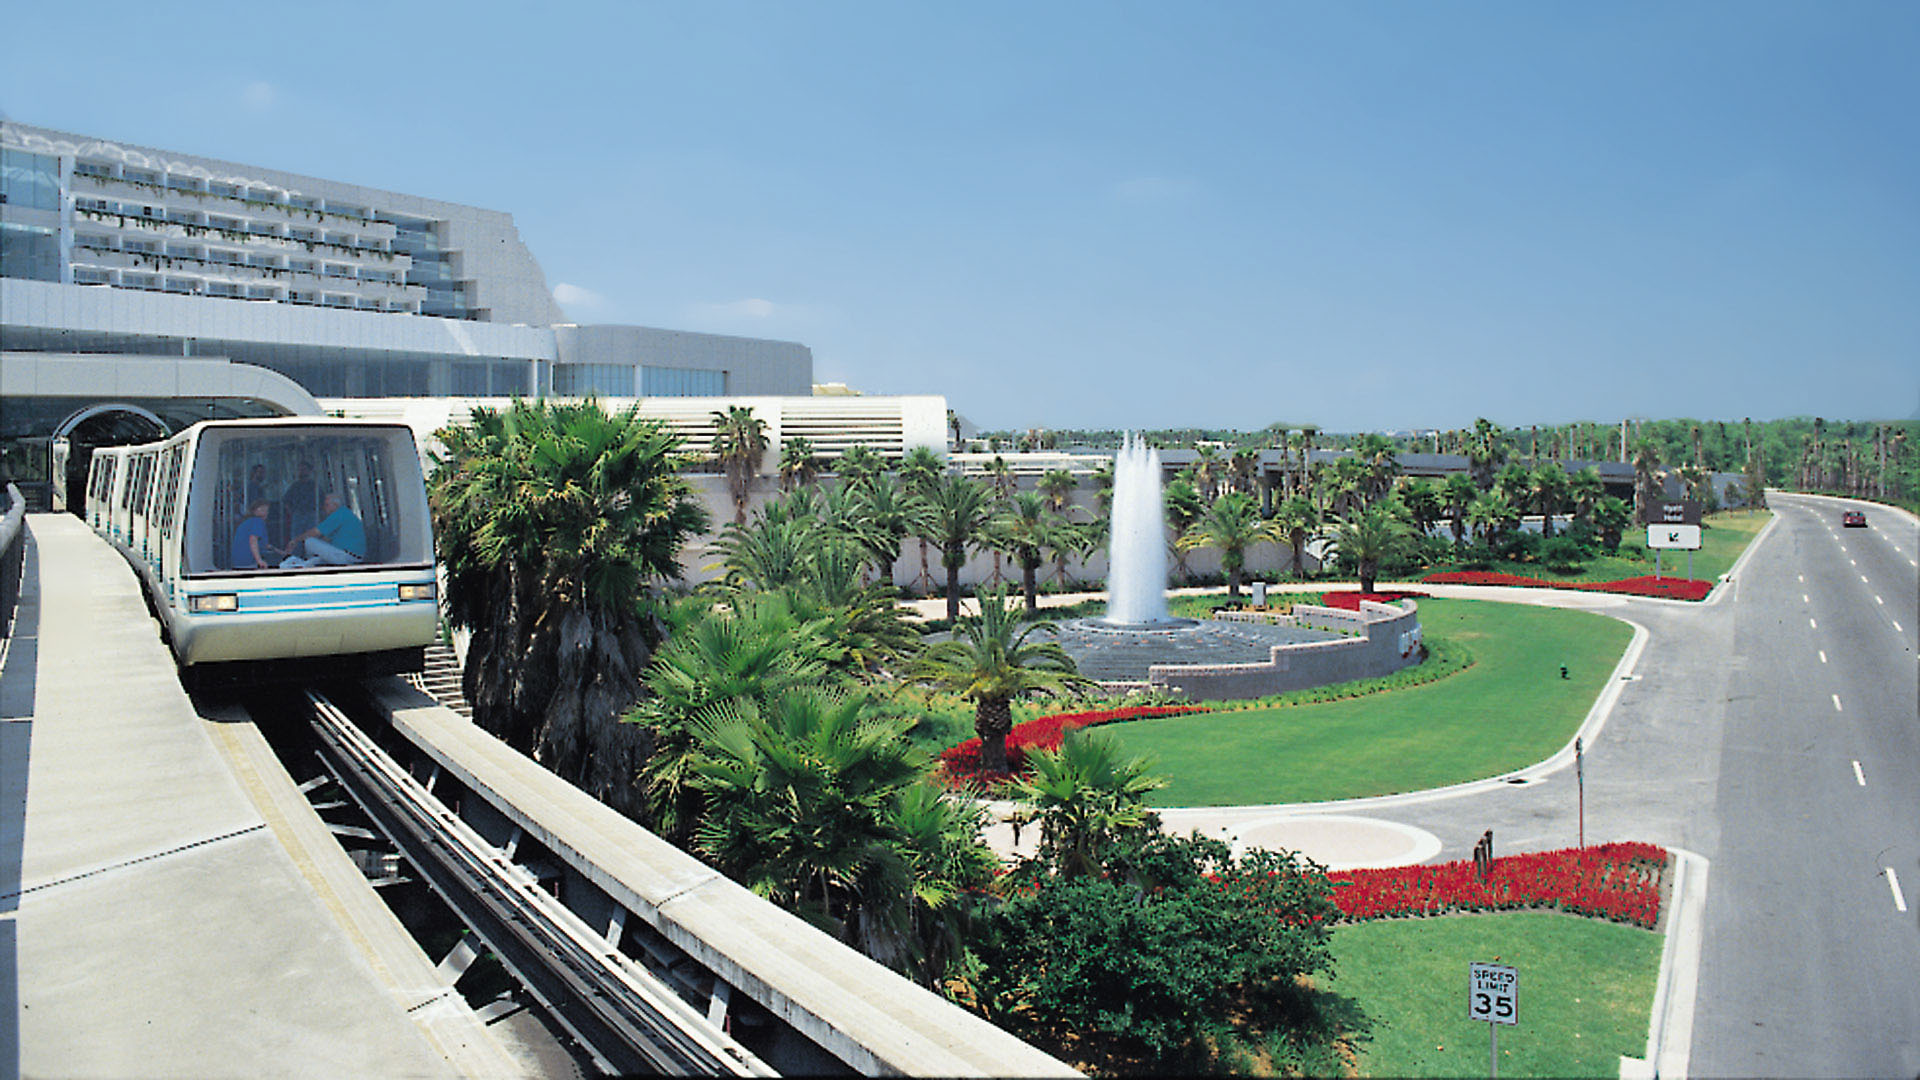 Orlando International Airport, monorail